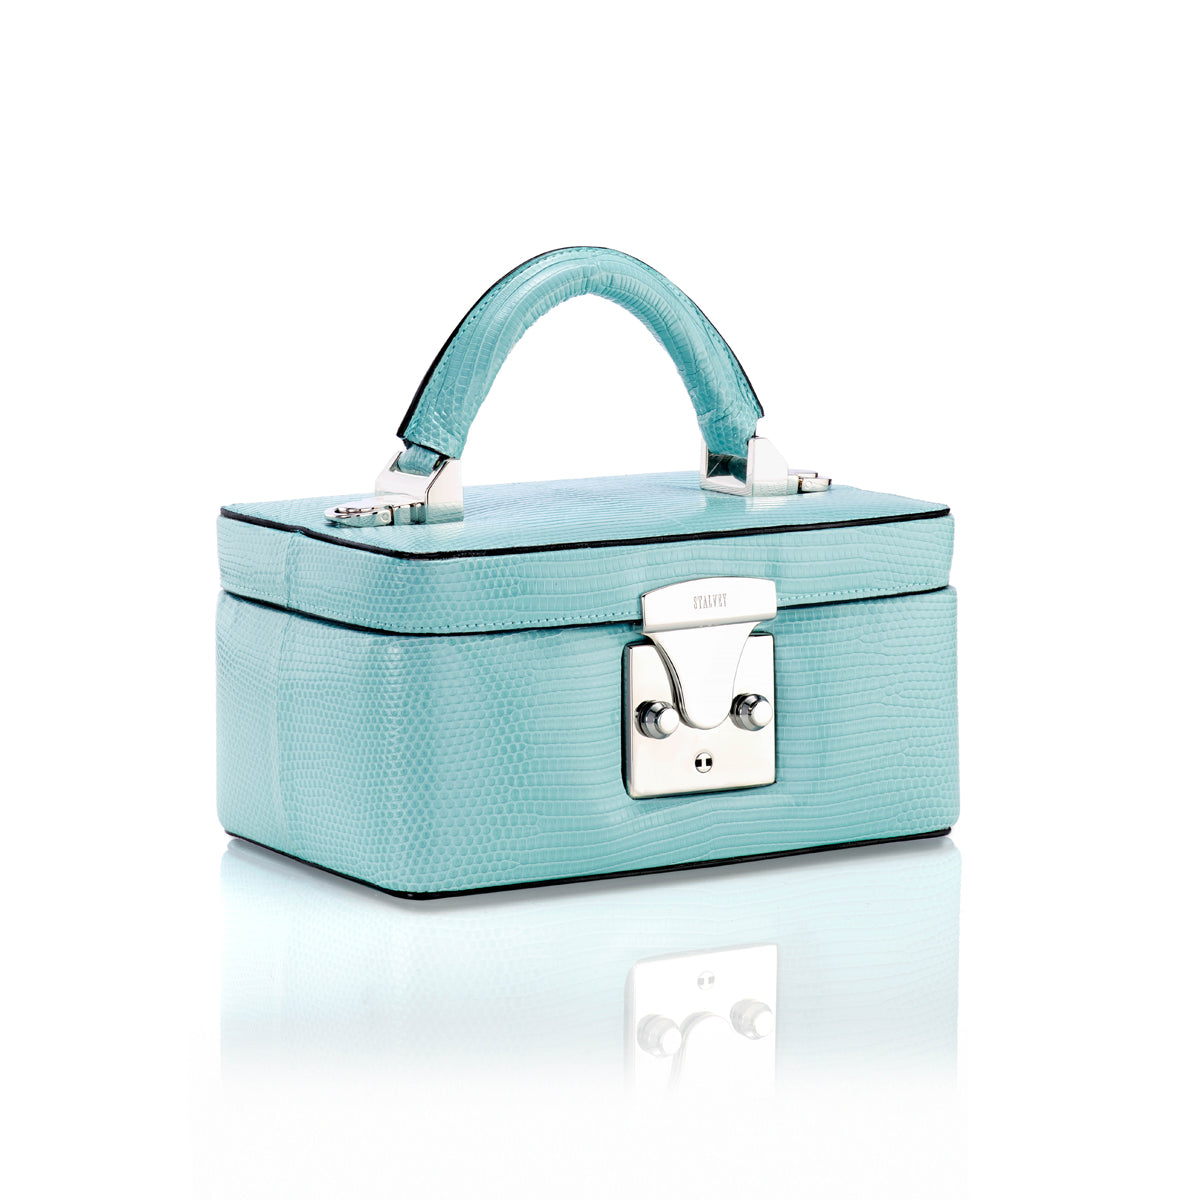 Beauty Case 1.7 Mini - Powder Blue Lizard